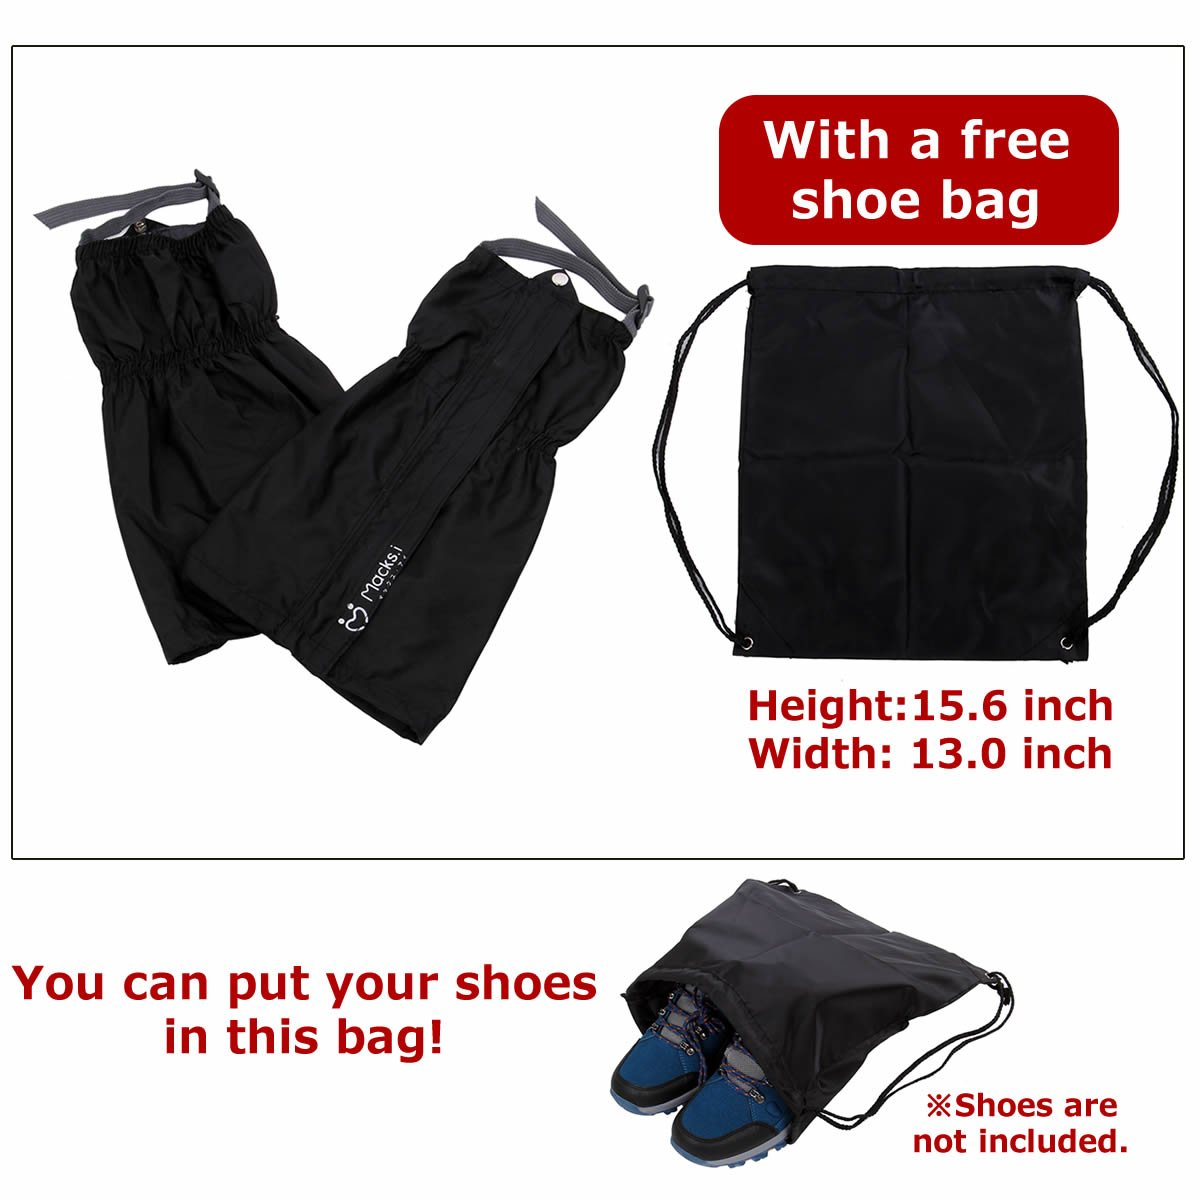 Macks.i Outdoor Unisex Waterproof Camping Hiking Gaiters High Leg Cover 1pair with a Free Shoe Bag by Macks.i (Image #6)